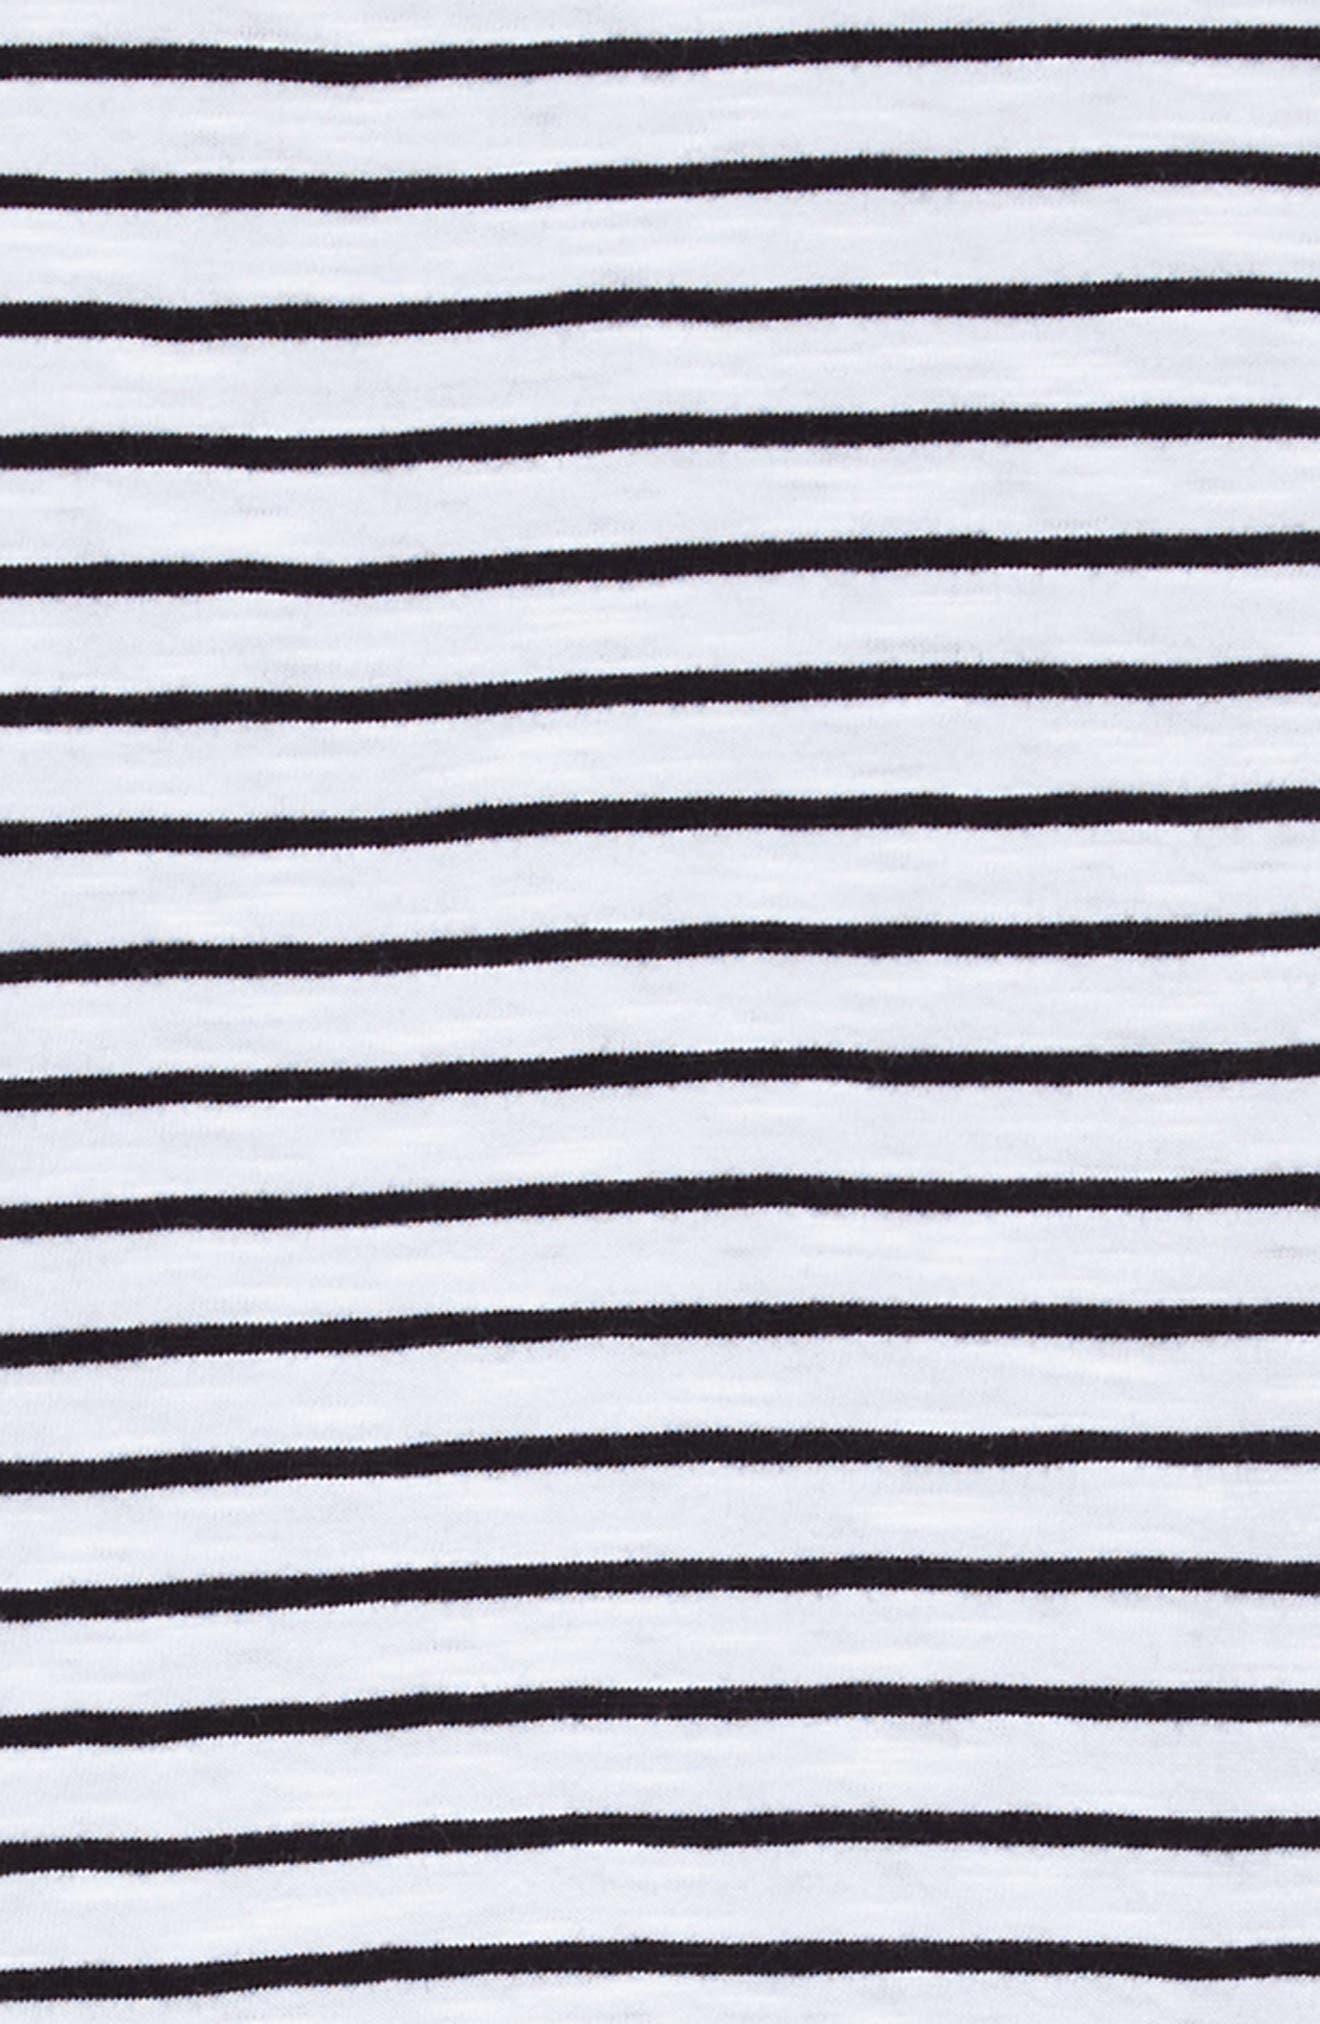 Stripe Tie Sleeve Dress,                             Alternate thumbnail 3, color,                             White- Black Stripe